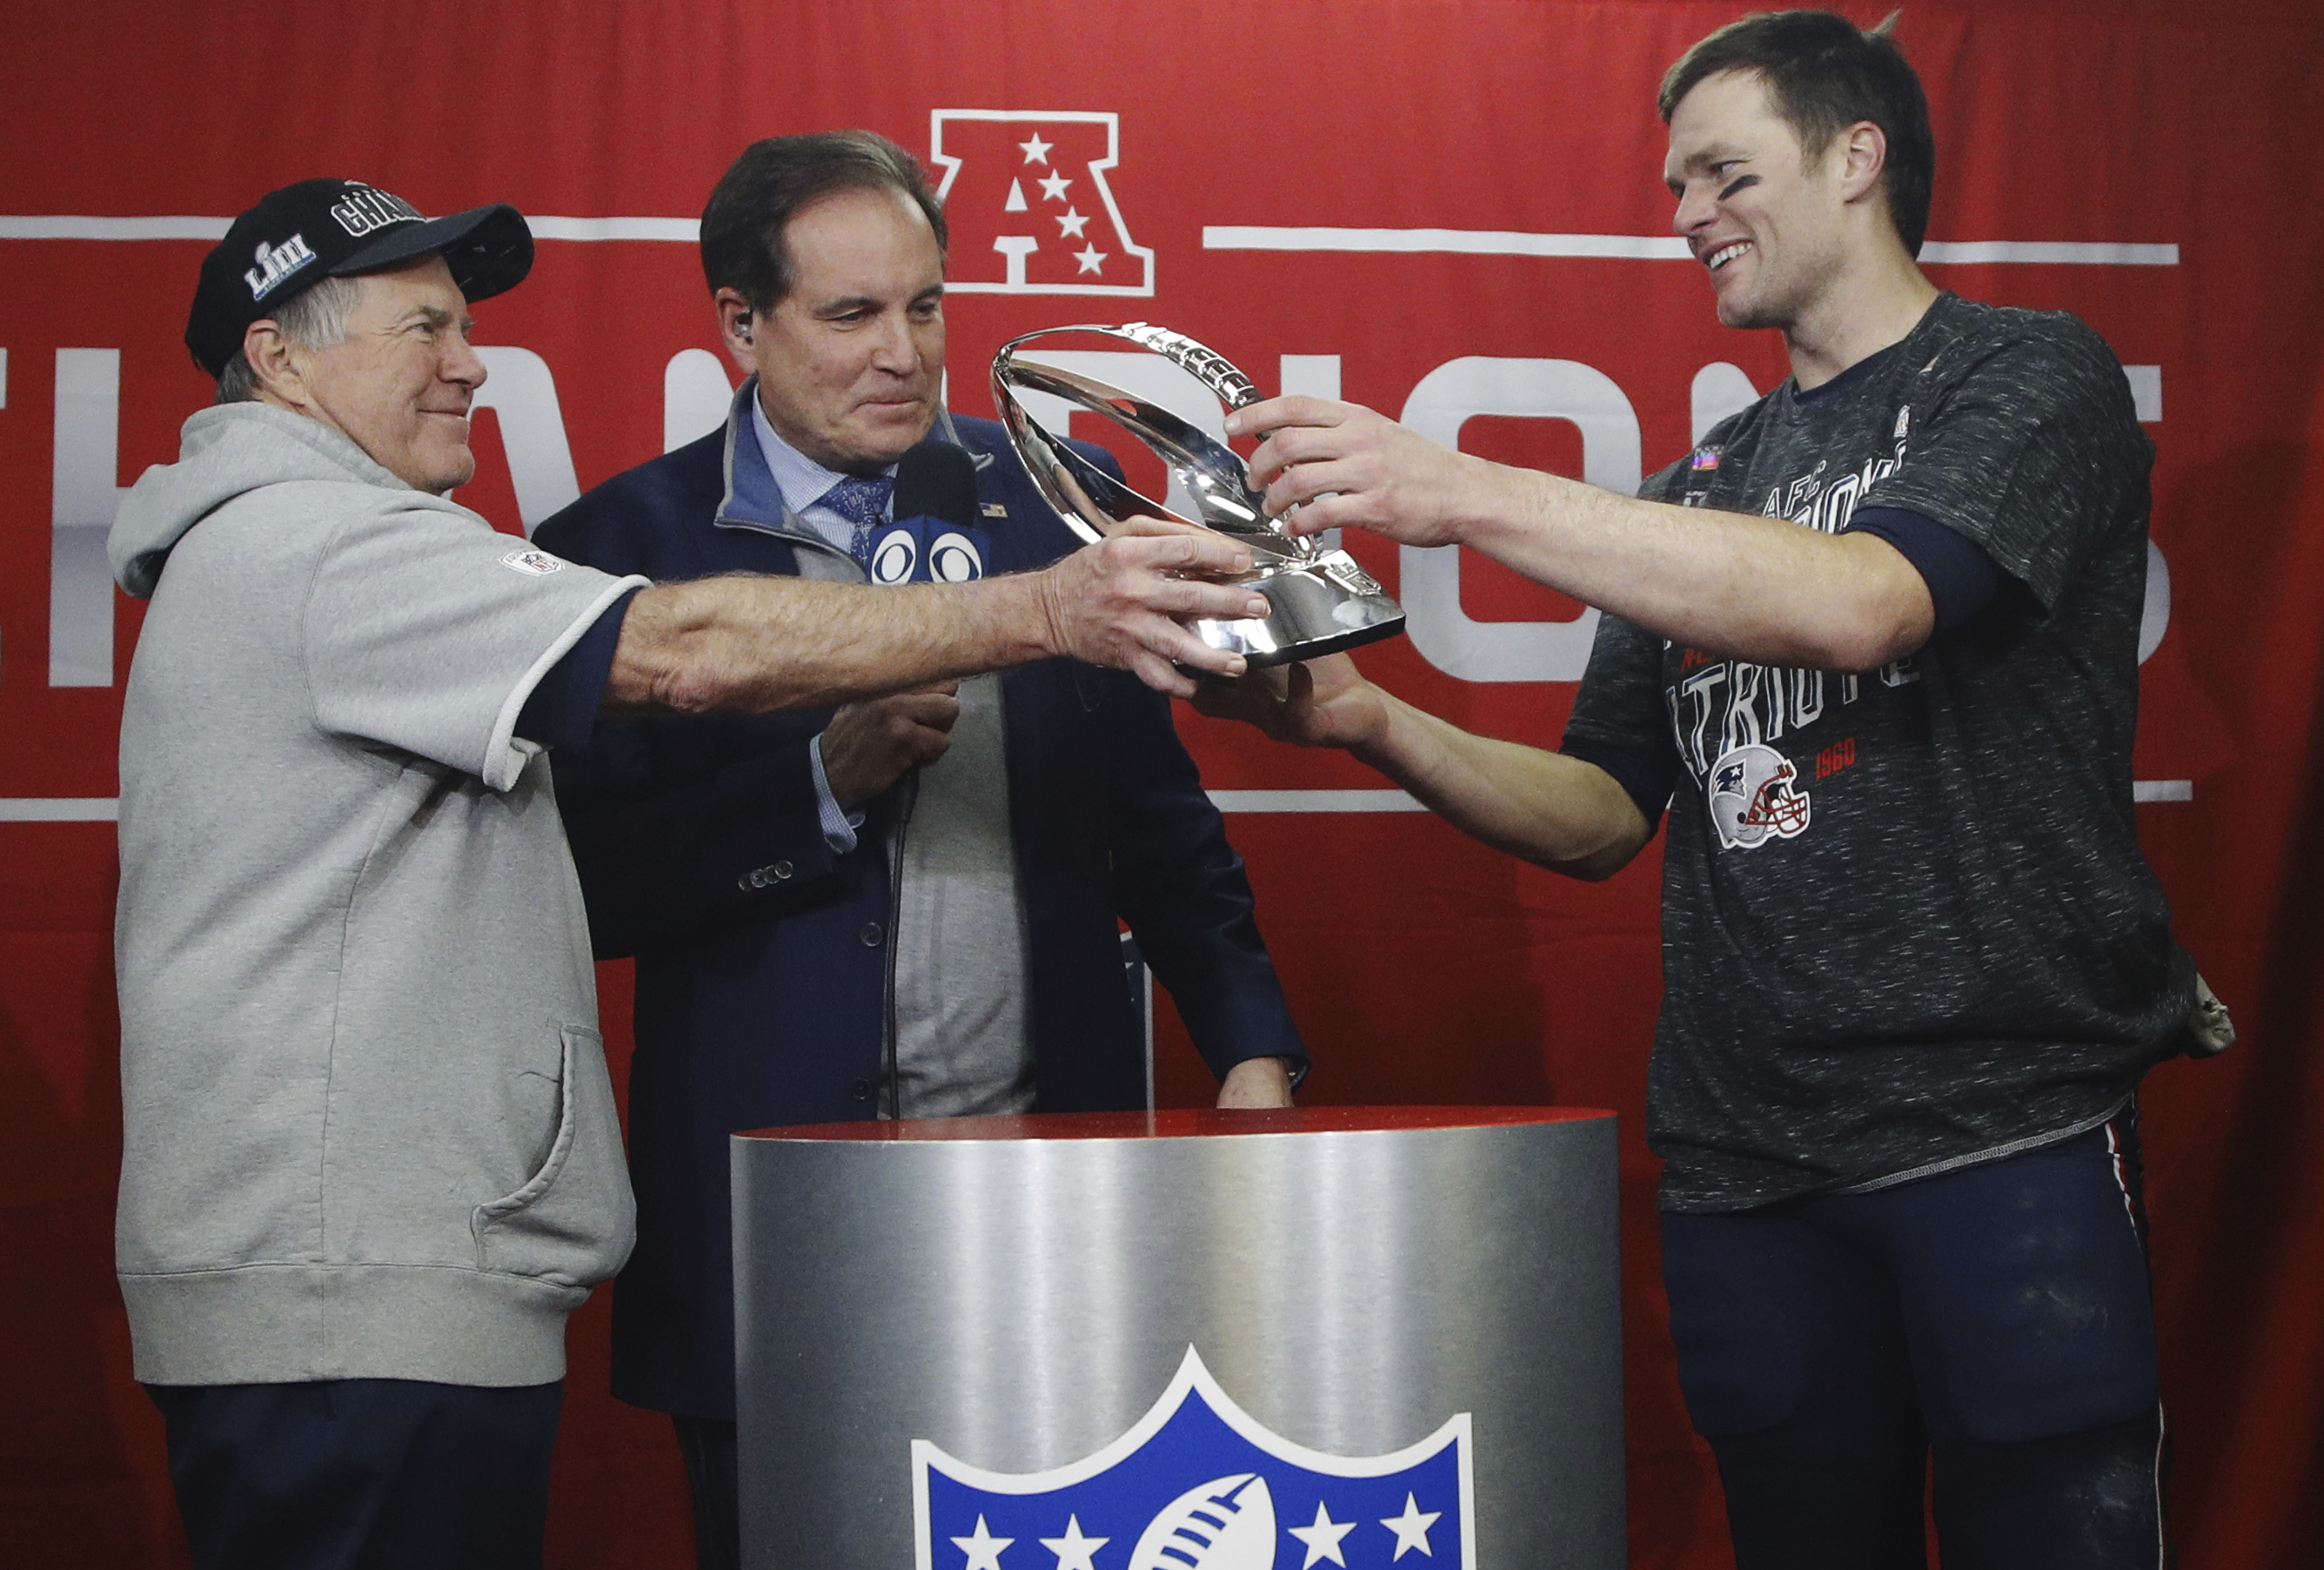 Super Bowl 2019: How much will N.J. sportsbooks make from betting on Patriots vs. Rams? | Super Bowl 53